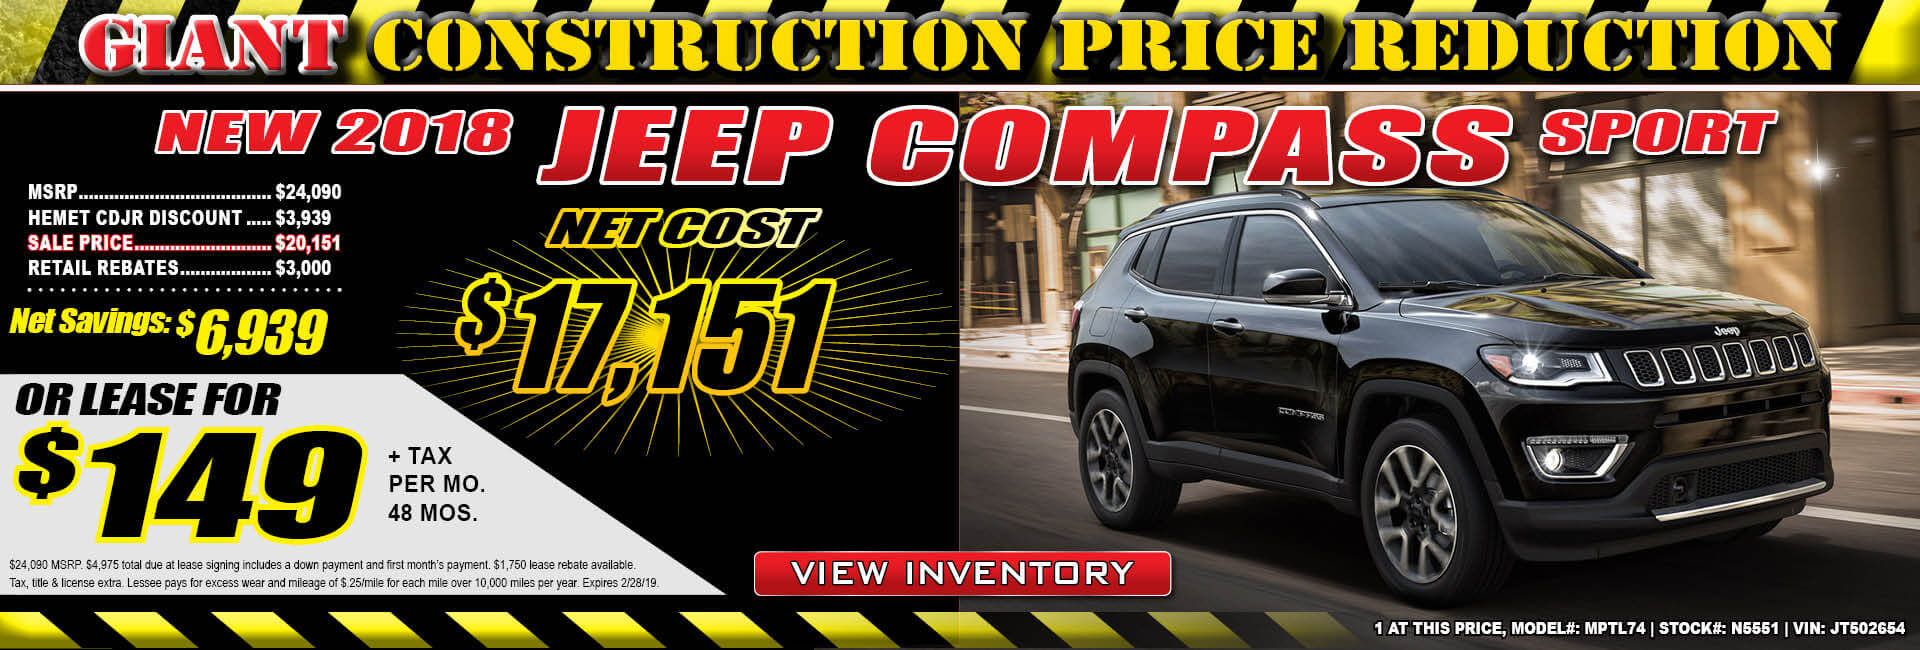 Jeep Compass $149 Lease